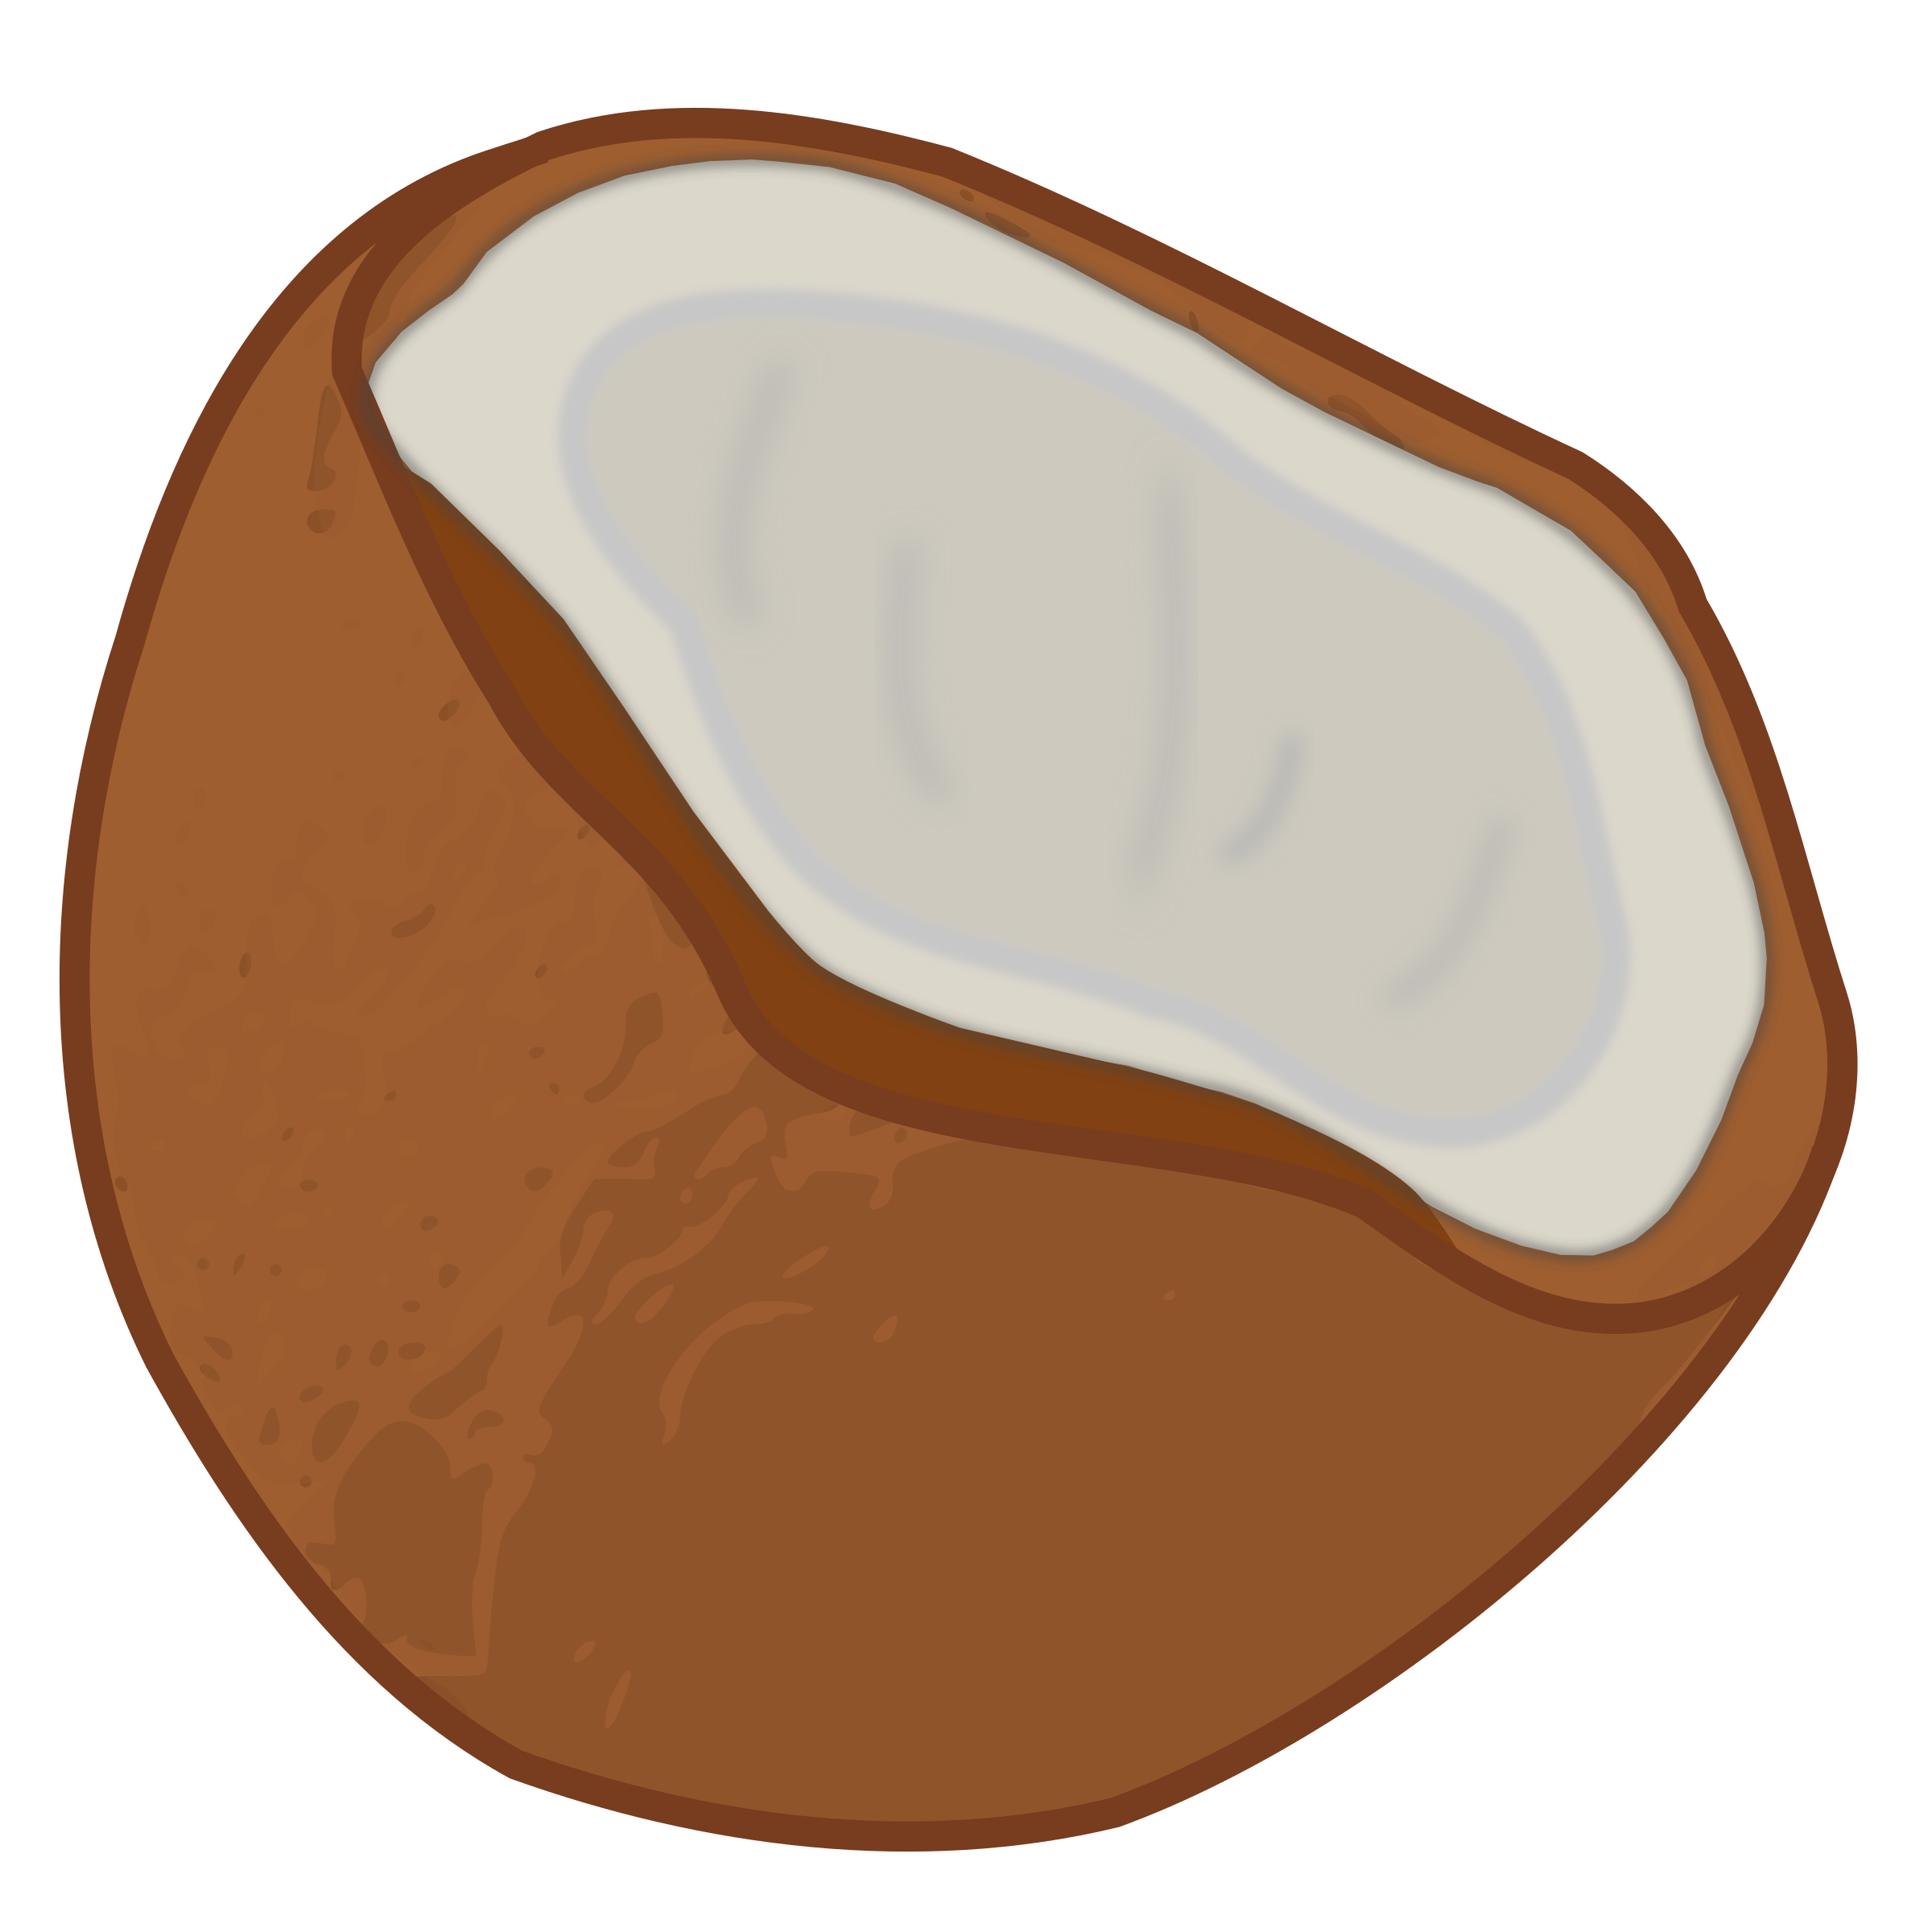 graphic library library Coconut clipart. Big image png